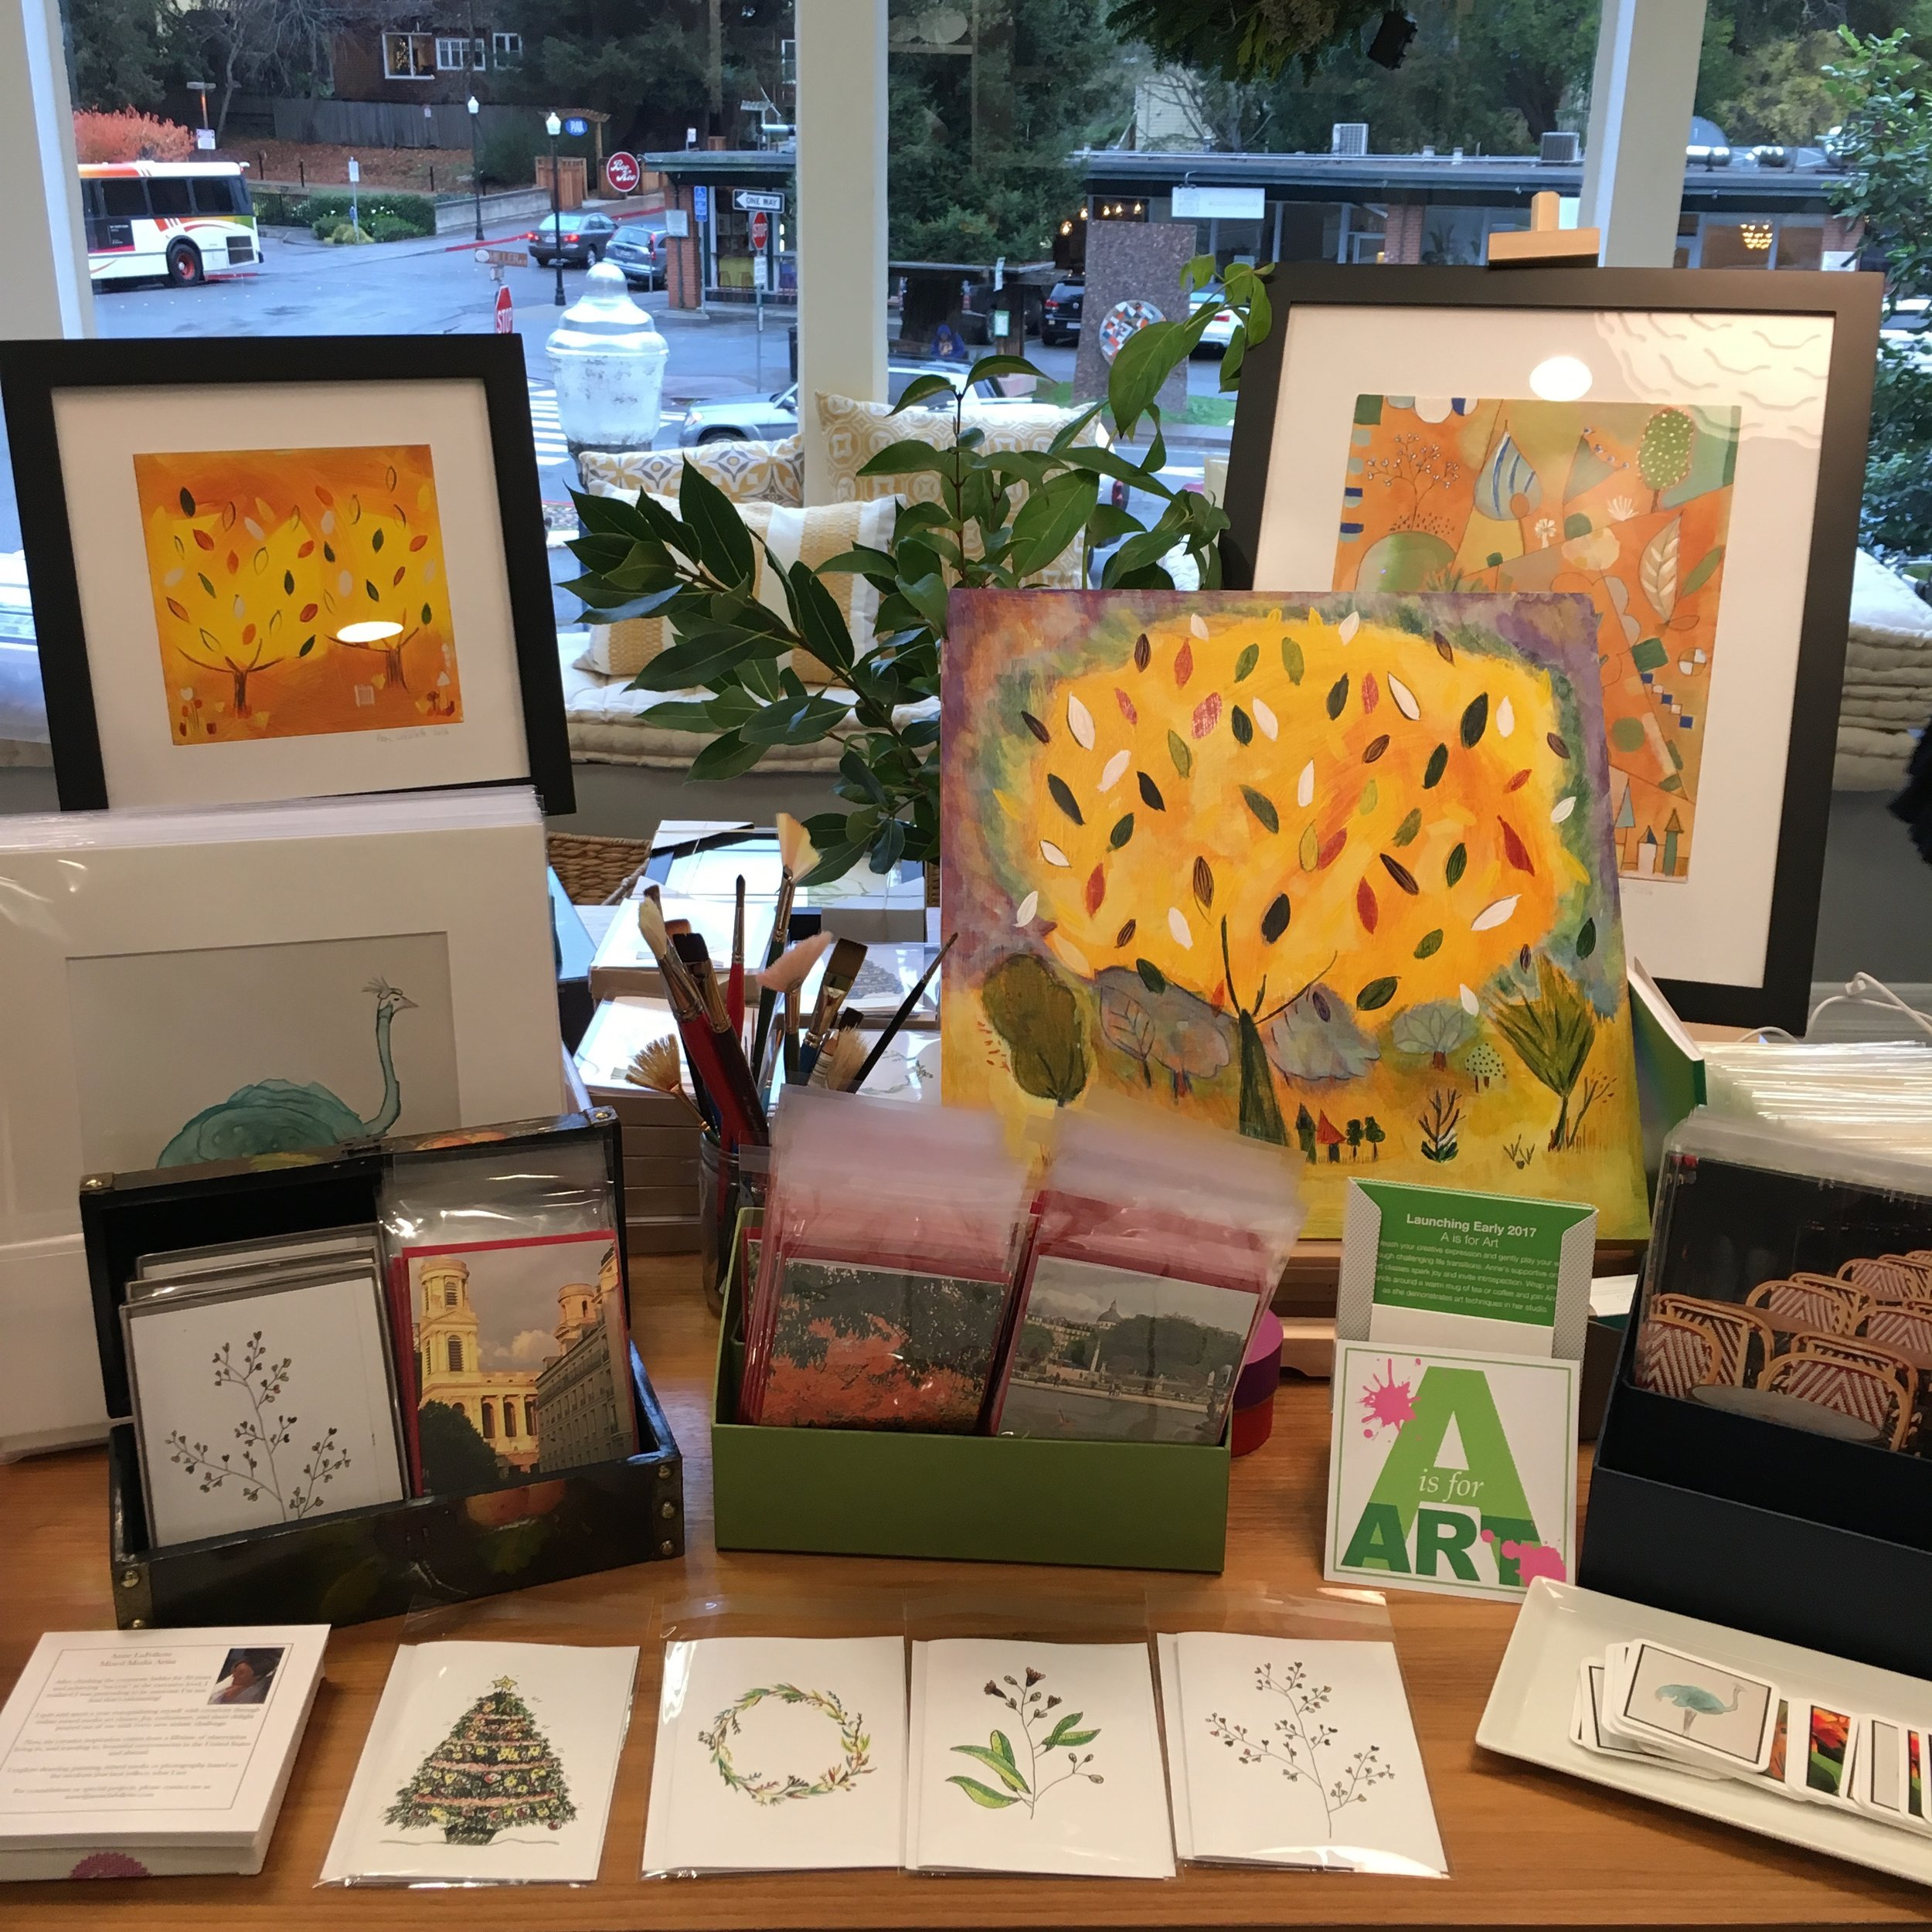 My art show table set-up.